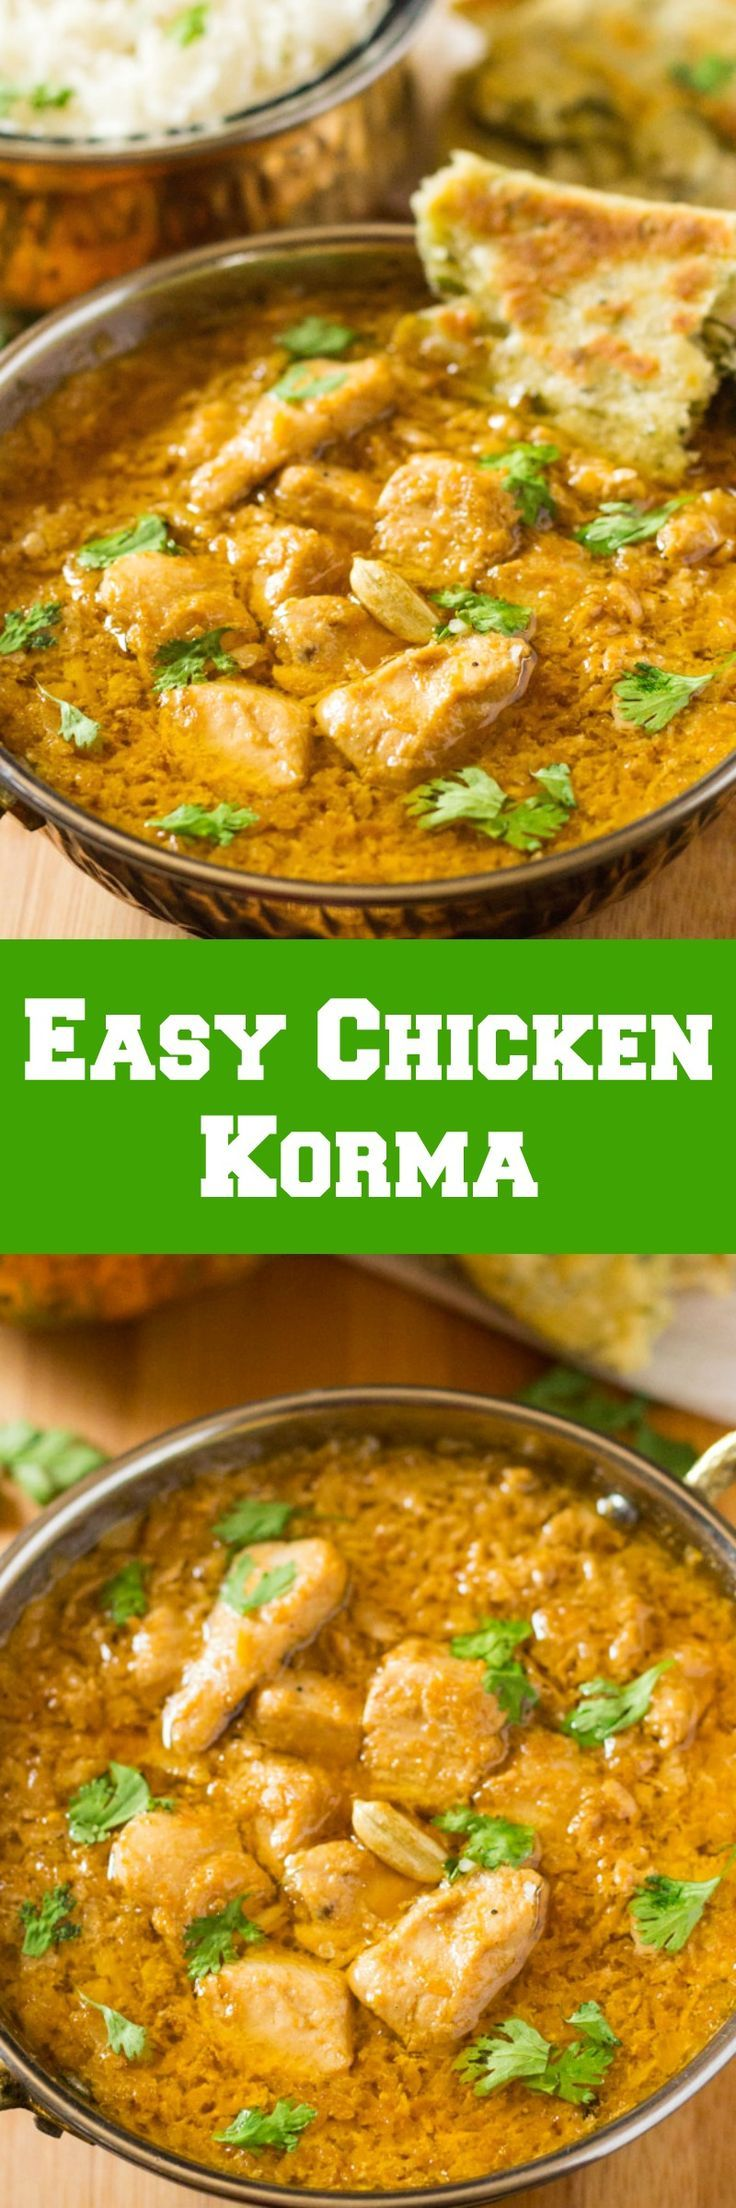 Easy Chicken Korma Curry                                                                                                                                                                                 More ❤️︎ Leave a like, save this pin and follow more content if you loved this